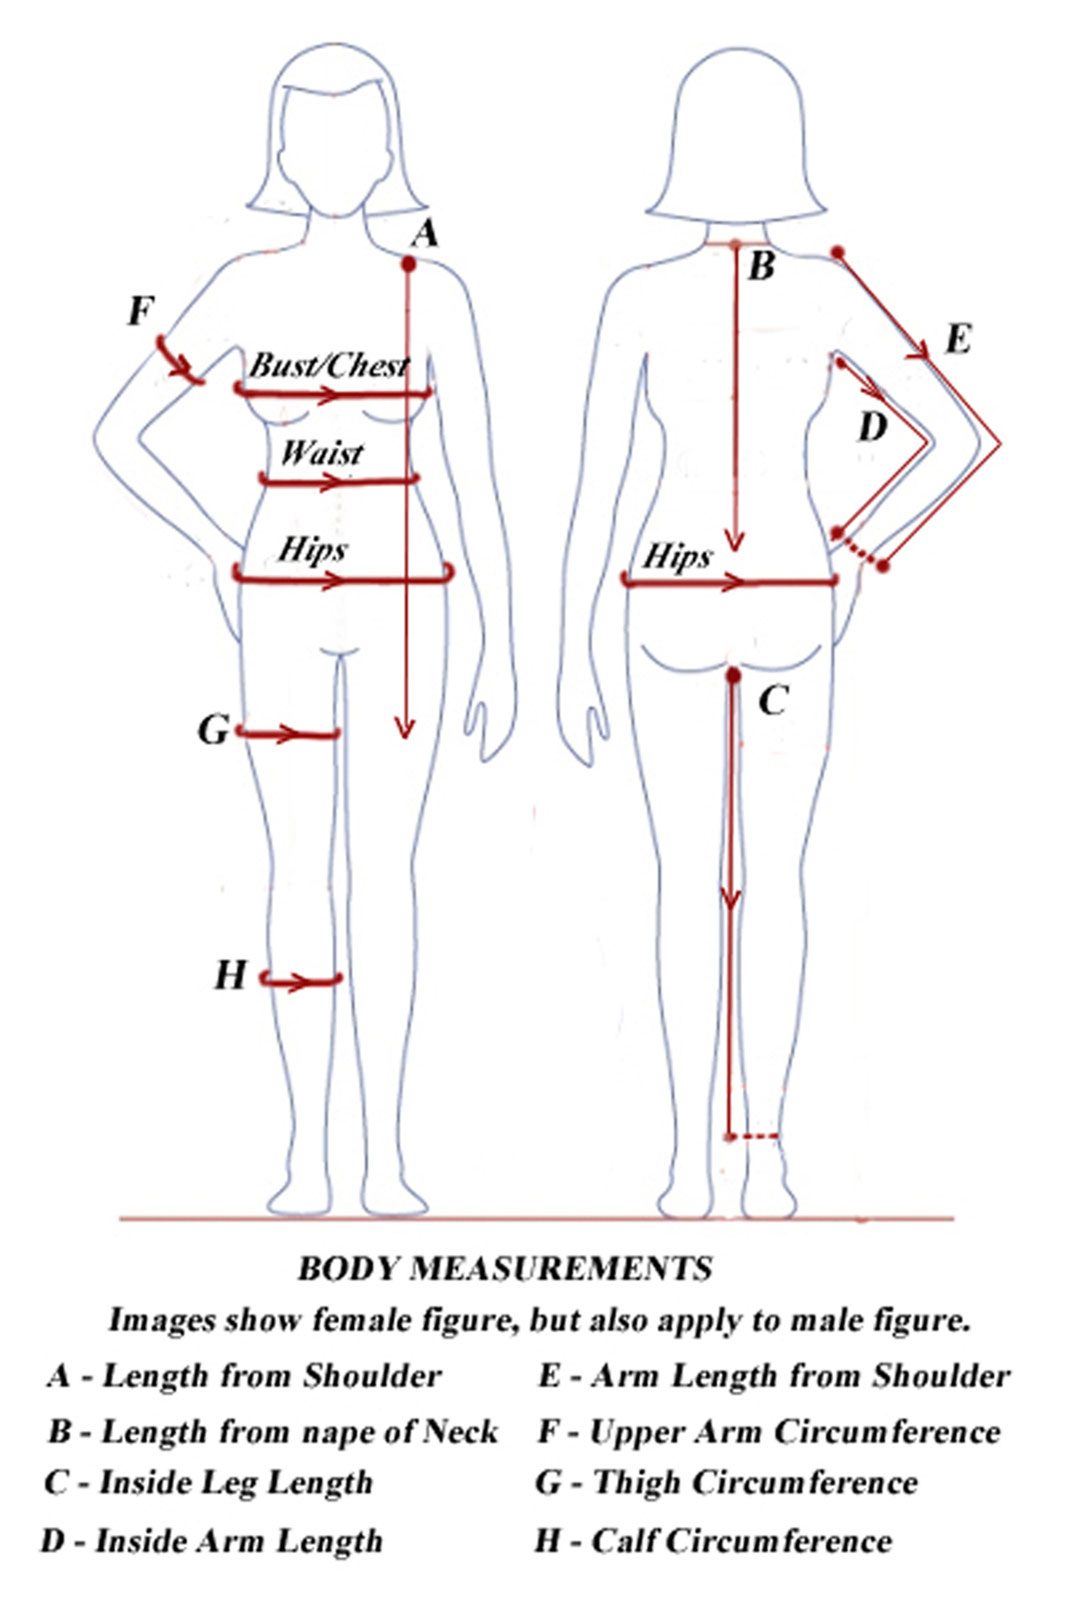 Girth measurements will give you additional valuable information to assess the progress of your bodybuilding program. To take your body tape measurements, you will need a flexible tape measure that you can wrap around your body parts (or, if you want to go old school, you can wrap a string and then.